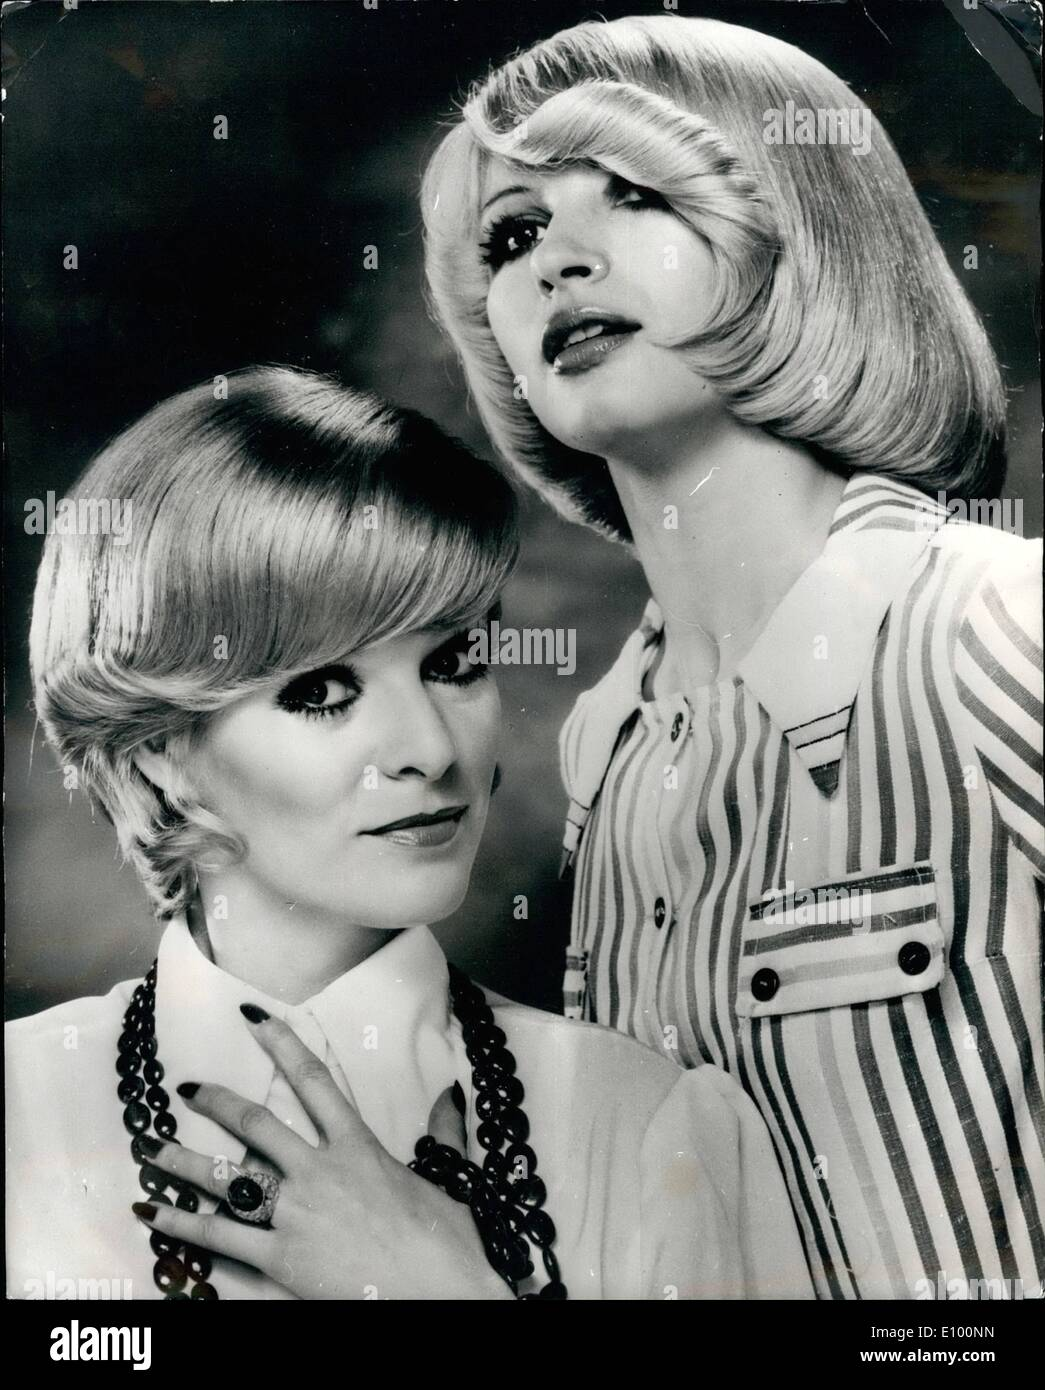 Feb 02 1972 New Hair Styles From Paris The New Short